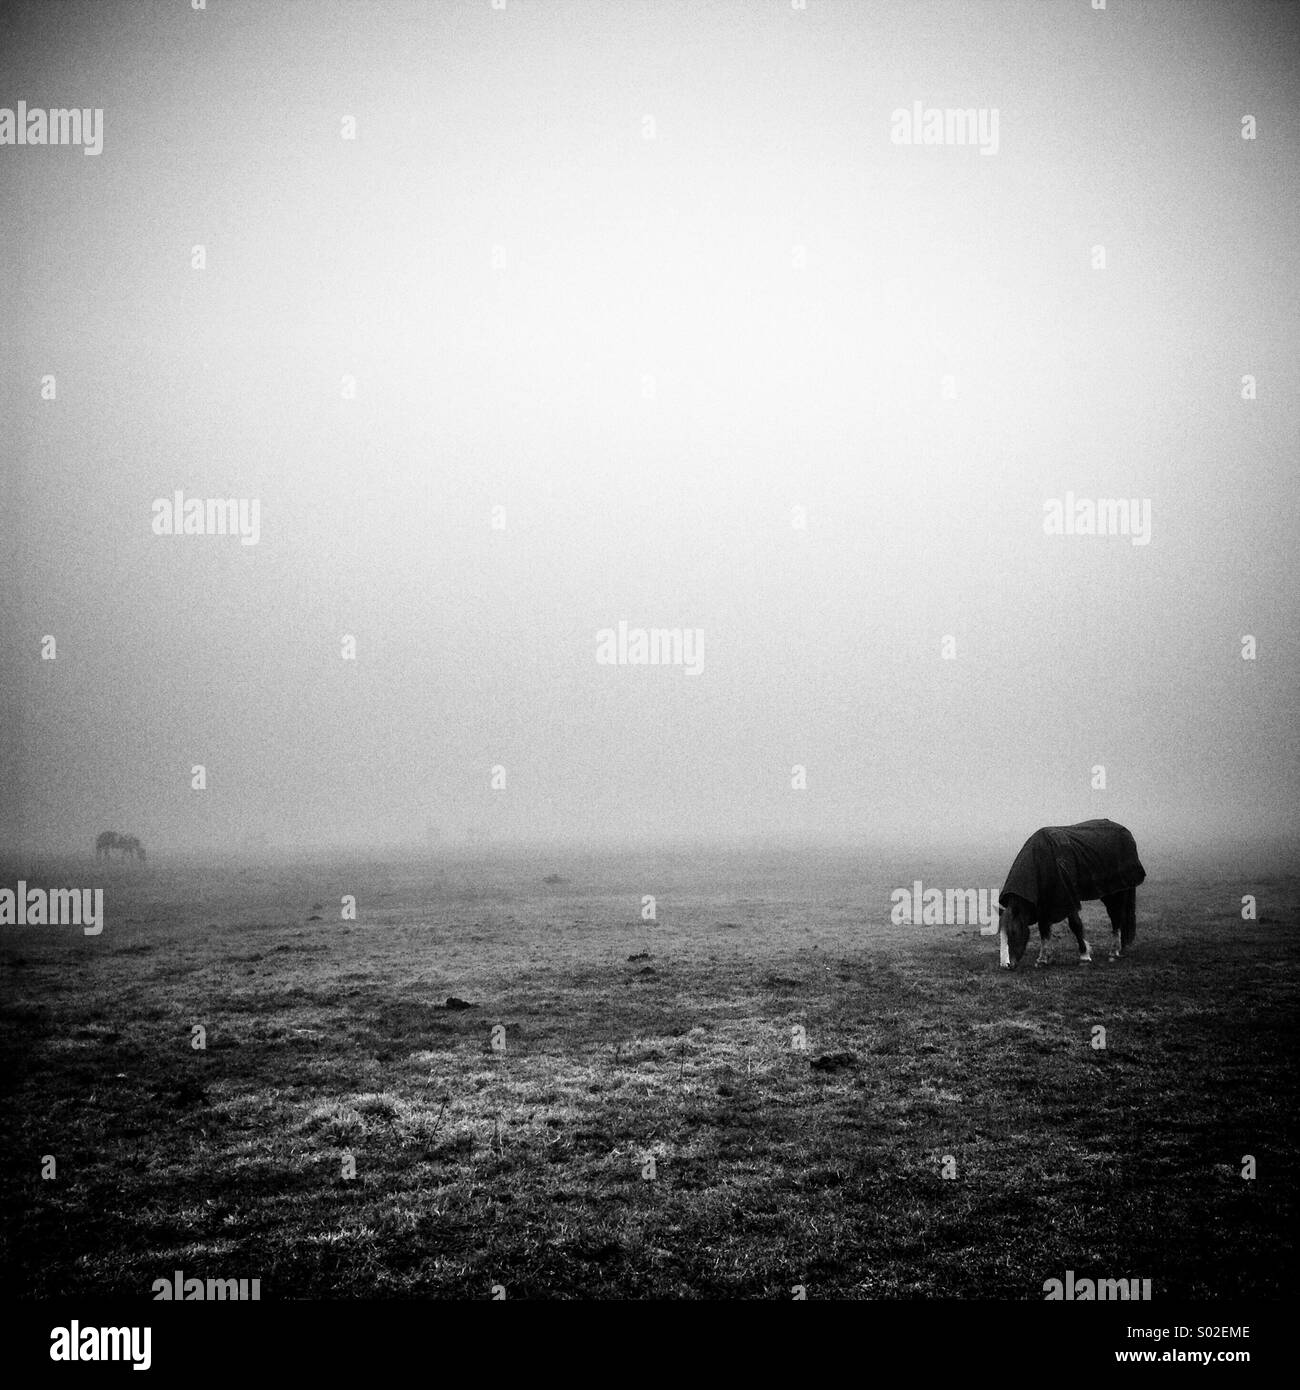 2 horses grazing on a blank flat landscape with others just visible in the distance through the fog - Stock Image